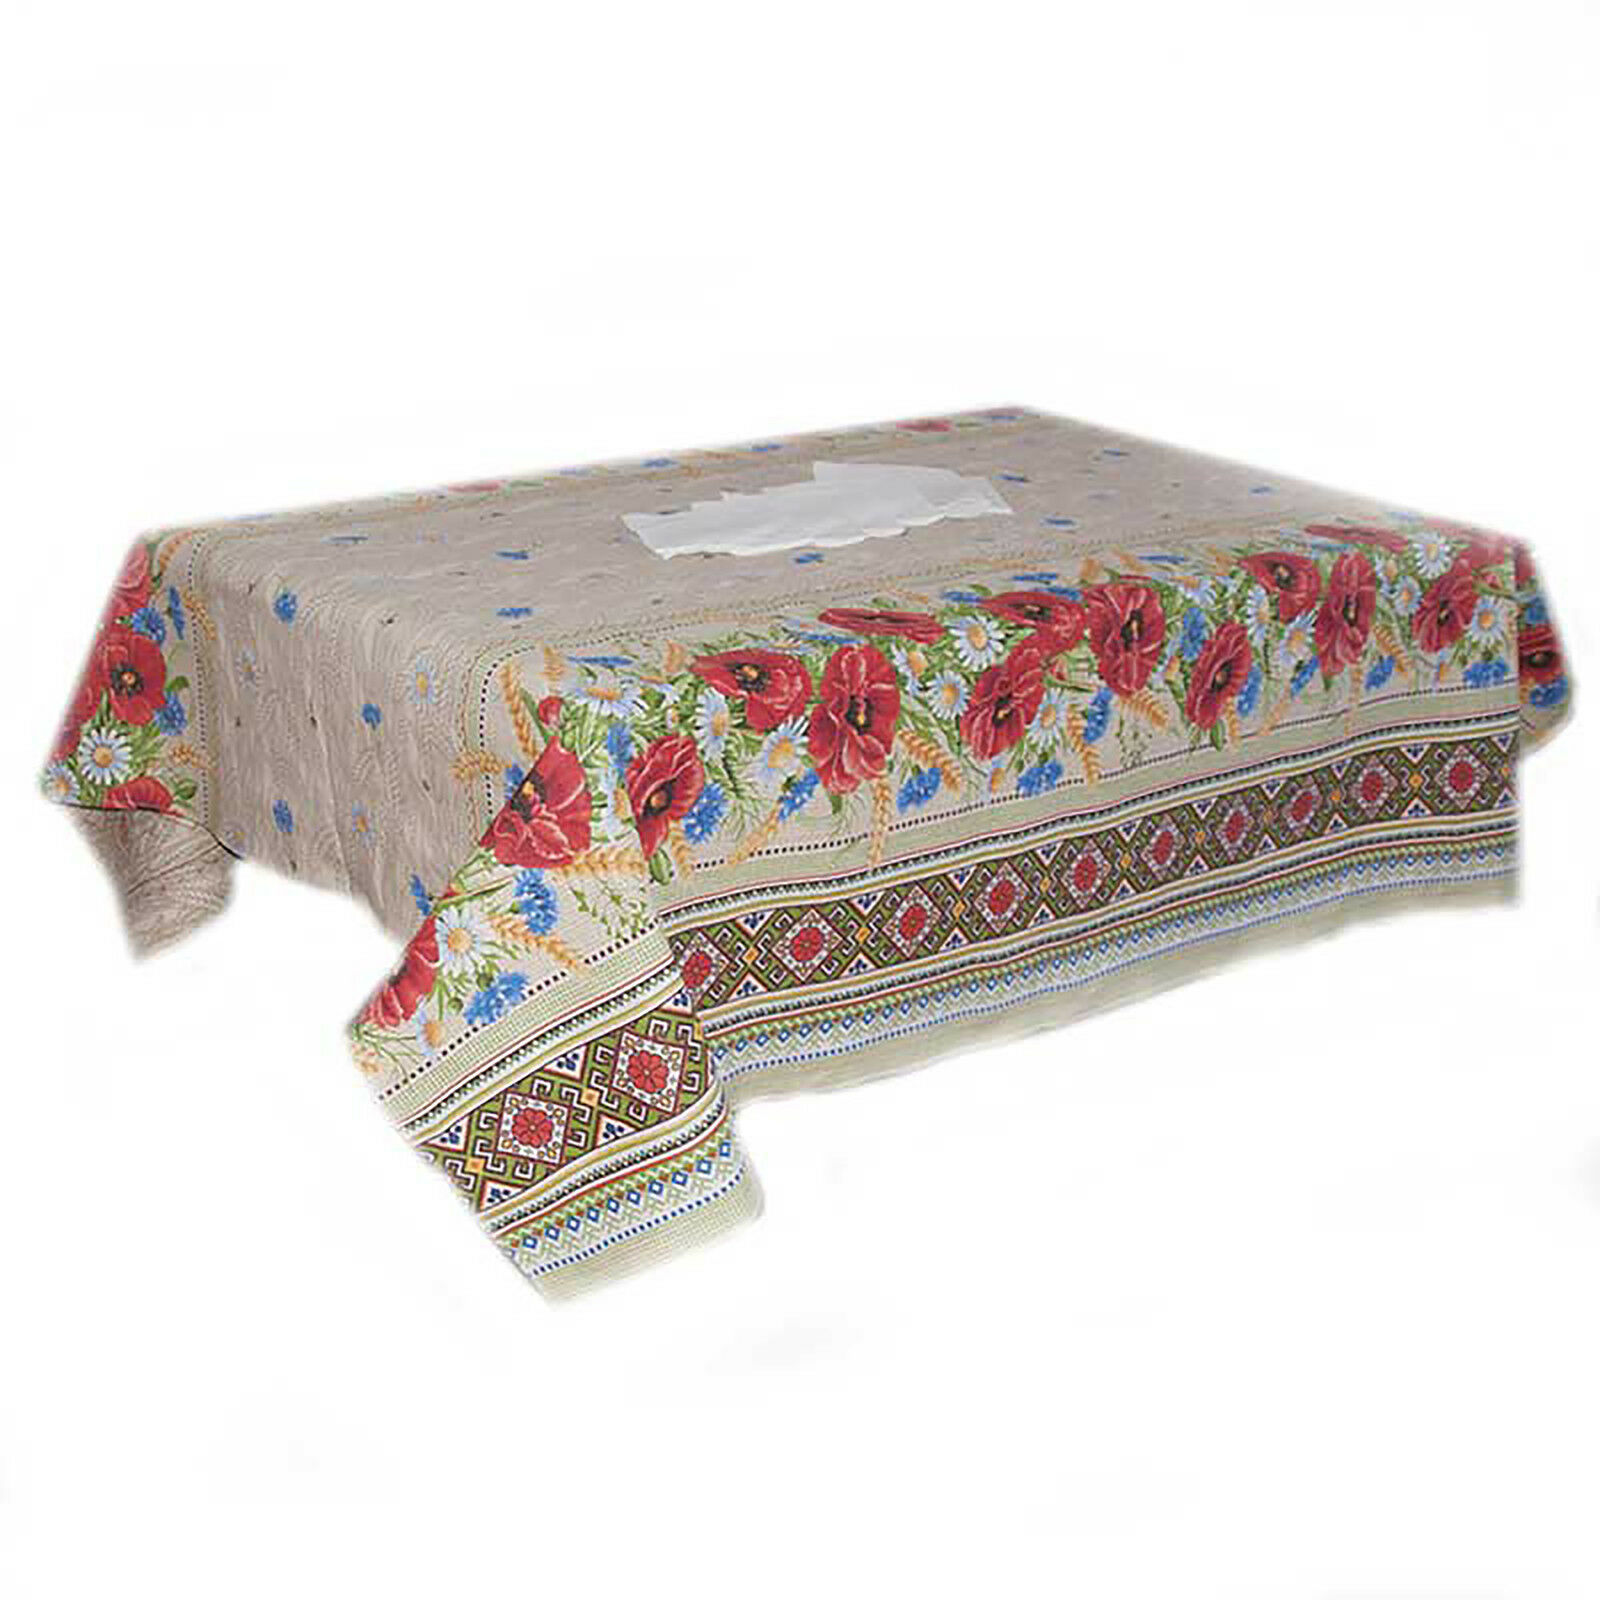 Table Set Nappe Serviettes Russe Style Ornement Bouquet de Wild Fleurs p778